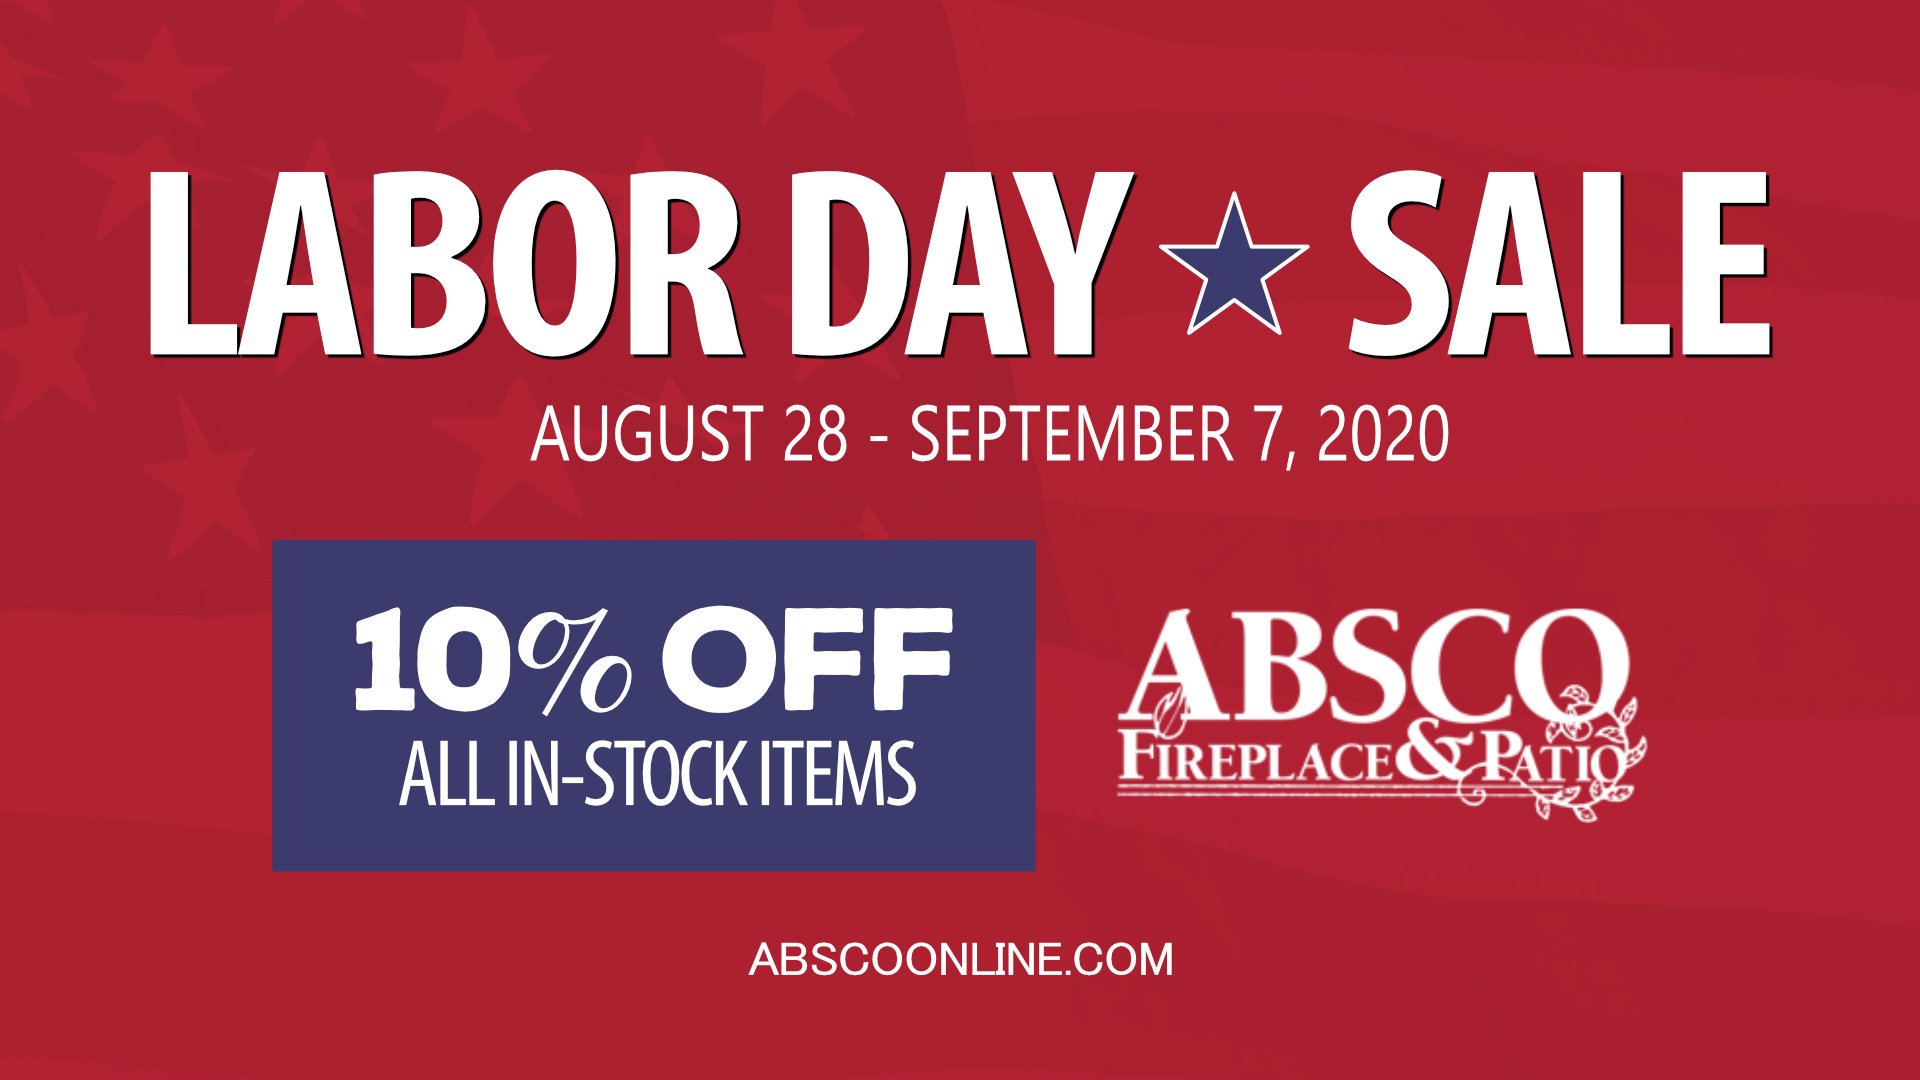 ABSCO - Labor Day Sale 2020 - 10% OFF EVERYTHING In-Stock